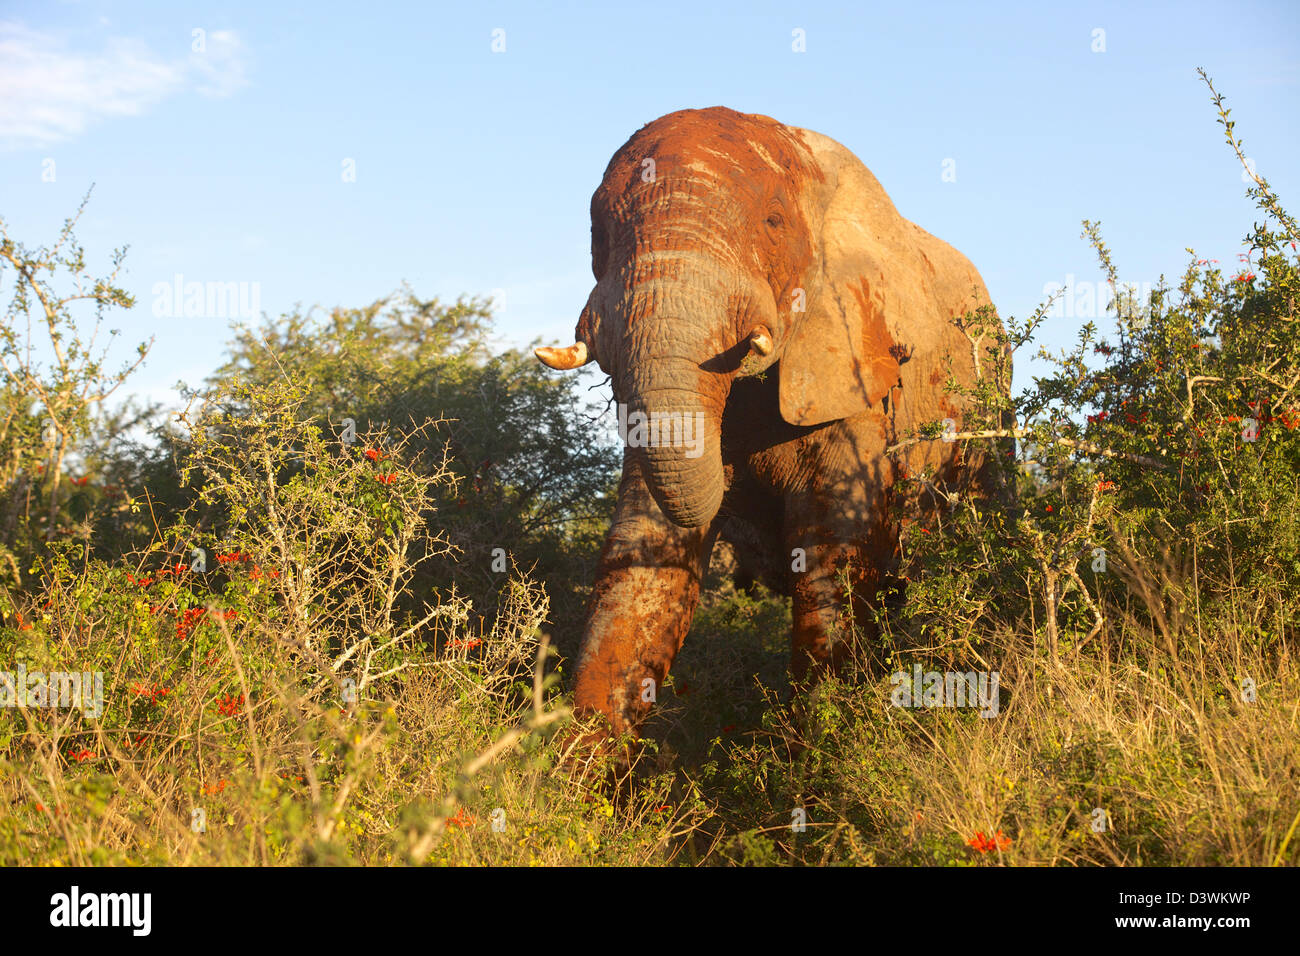 Close encounter with an elephant plastered with red mud in the Addo Elephant National Park, South Africa. - Stock Image